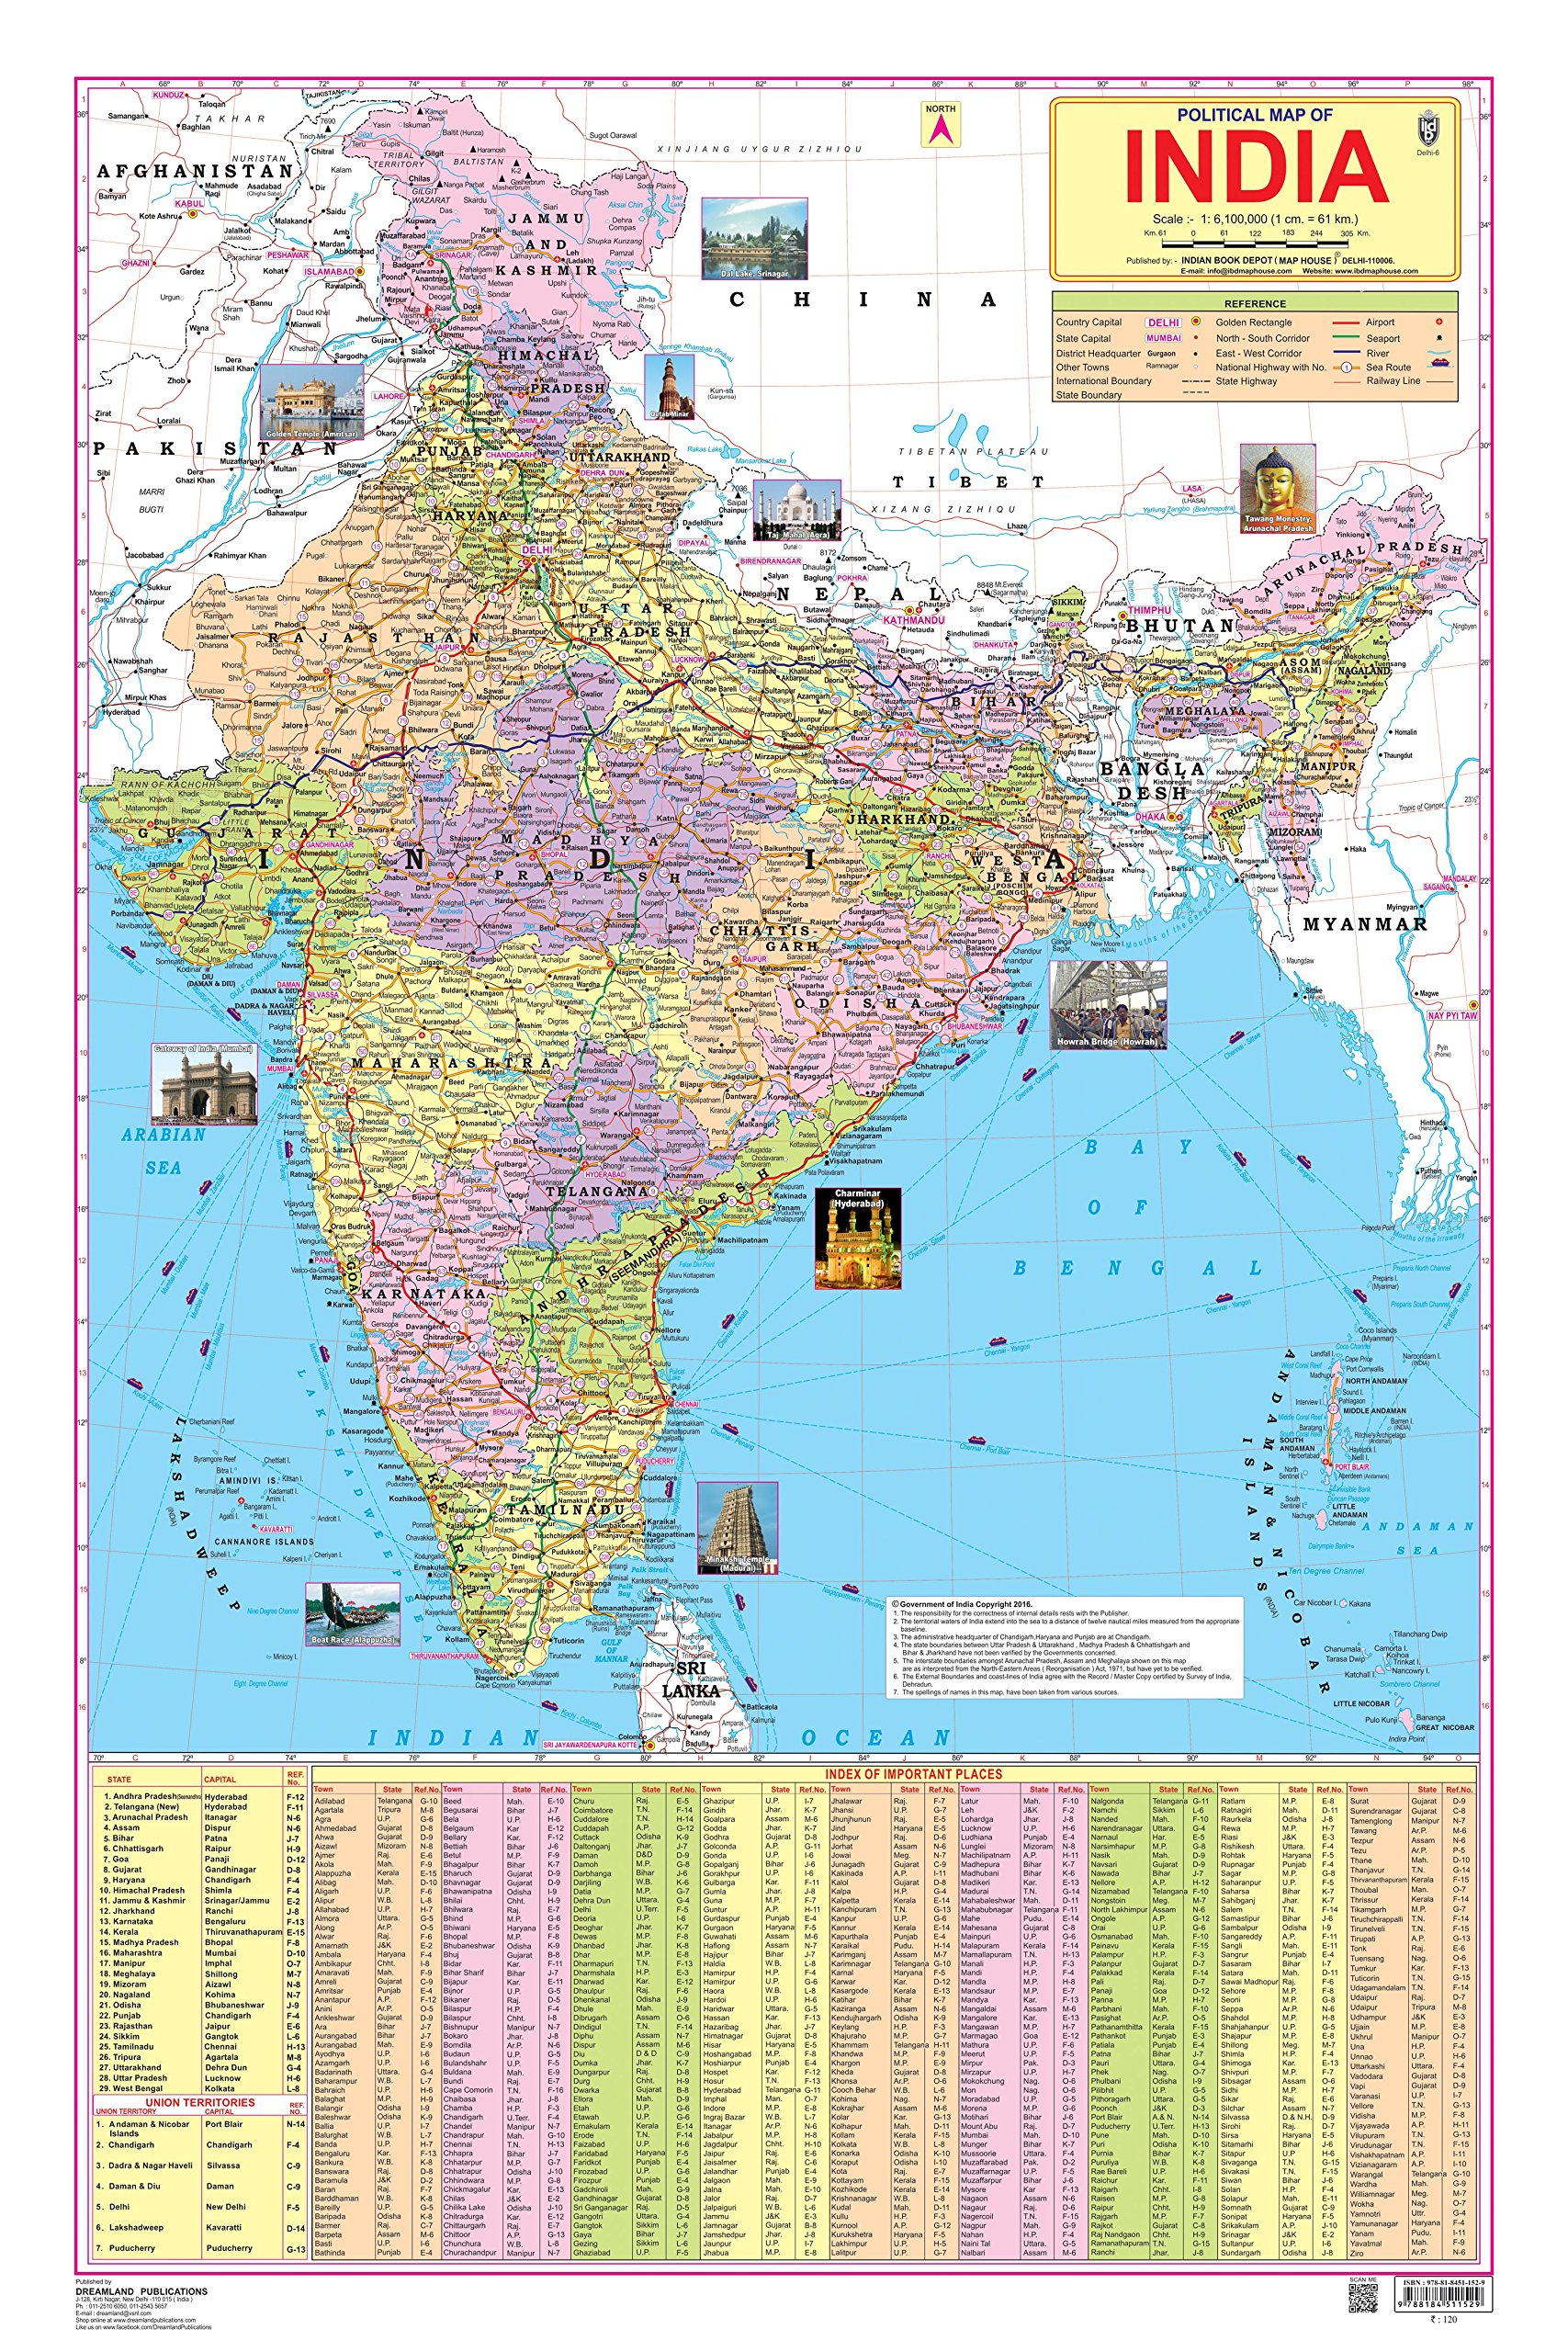 Buy india map book online at low prices in india india map buy india map book online at low prices in india india map reviews ratings amazon gumiabroncs